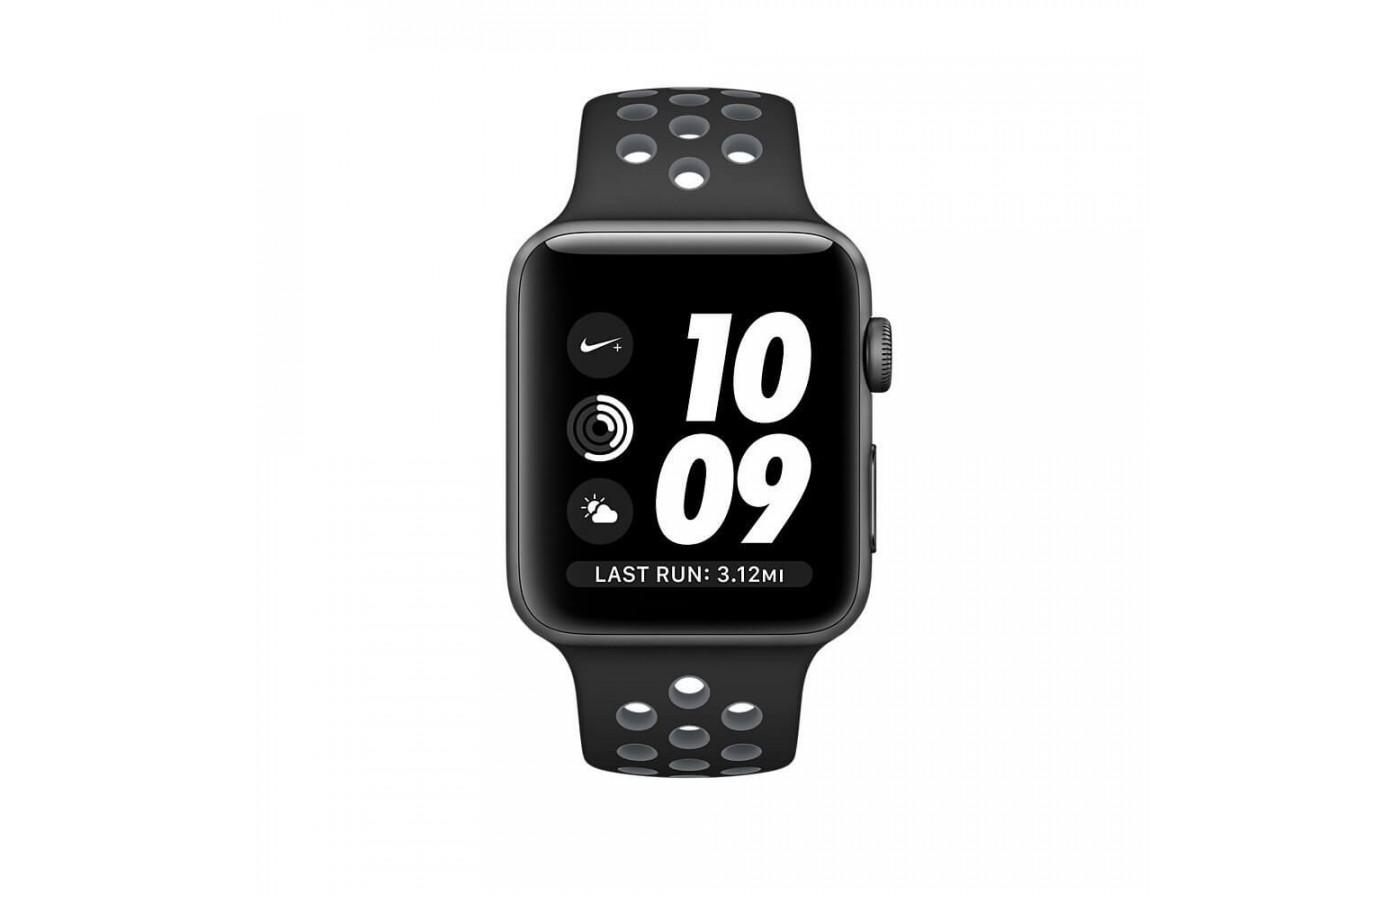 the Apple Watch Nike+ features a large, easy-to-read face